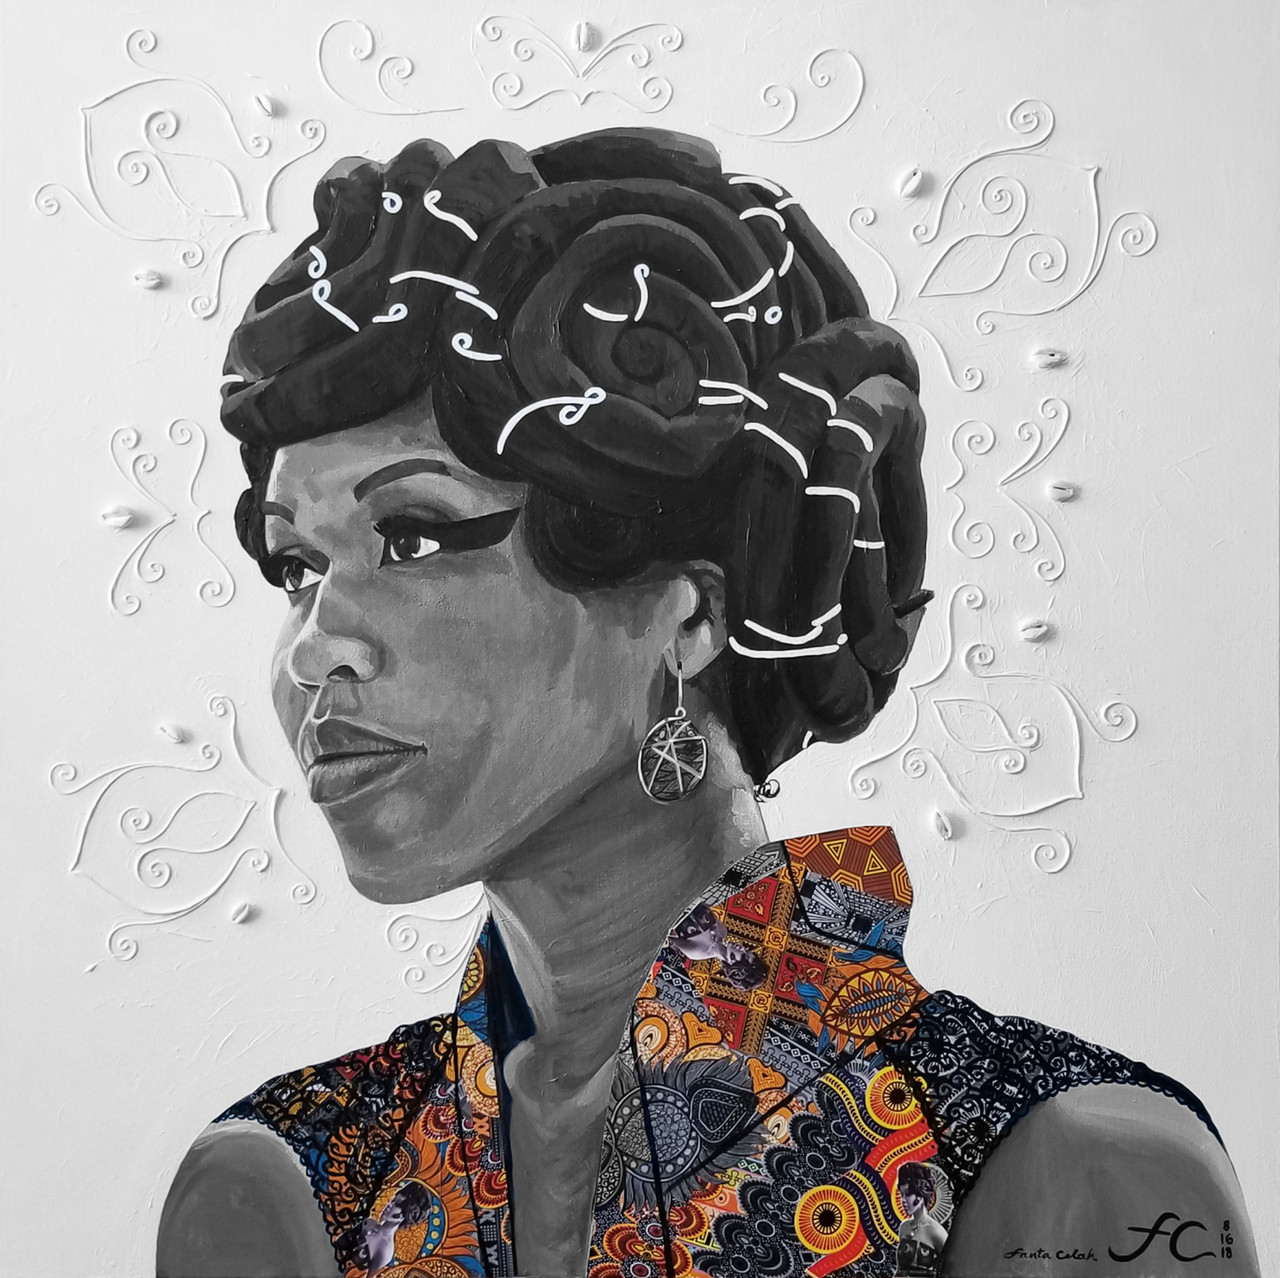 Emperial Sankofa: Self Portrait